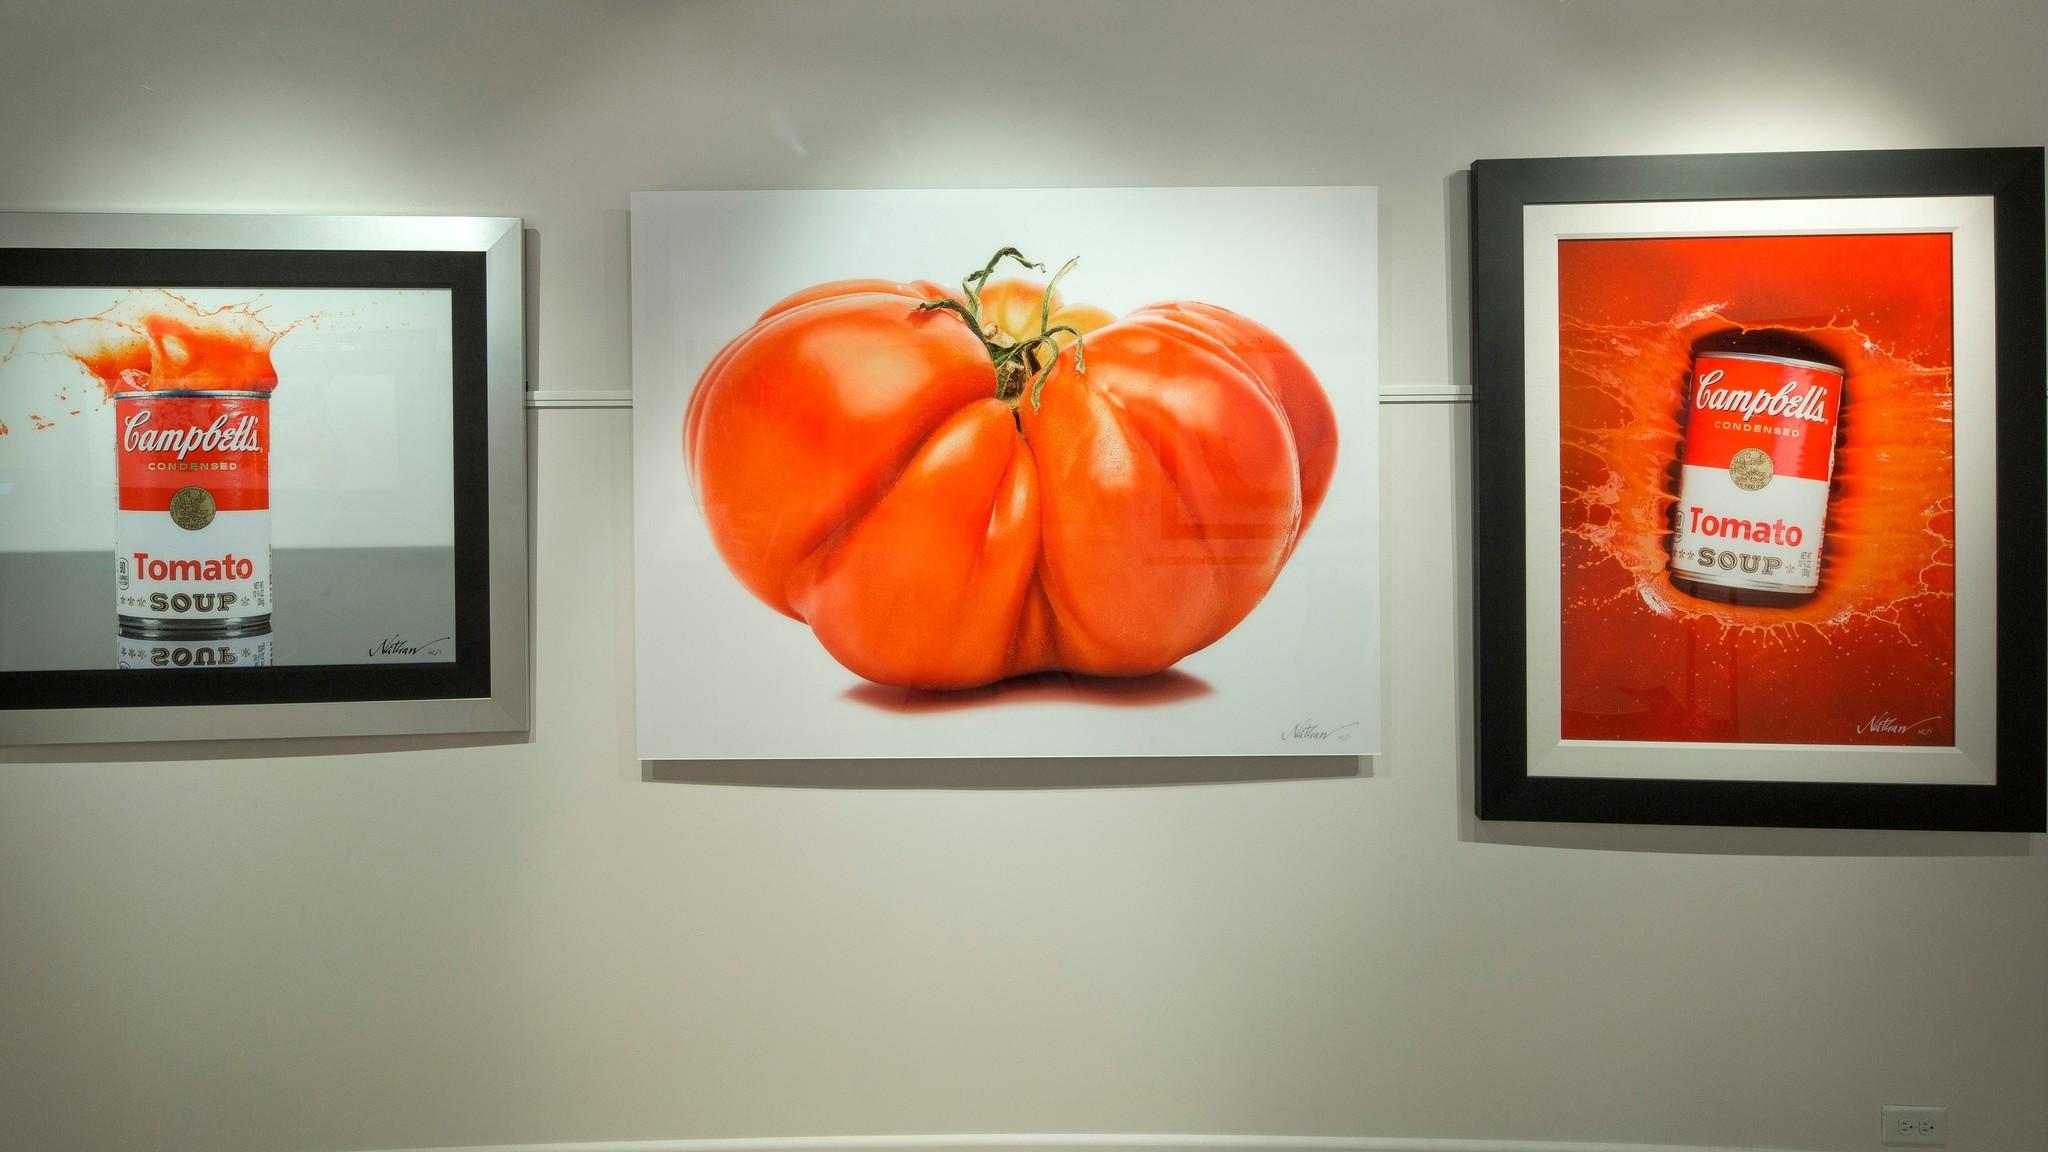 Images created by Nathan Myrhvold, who describes himself as a photographer, chef, scientist and author, are displayed at Myhrvold's gallery at the Forum Shops.